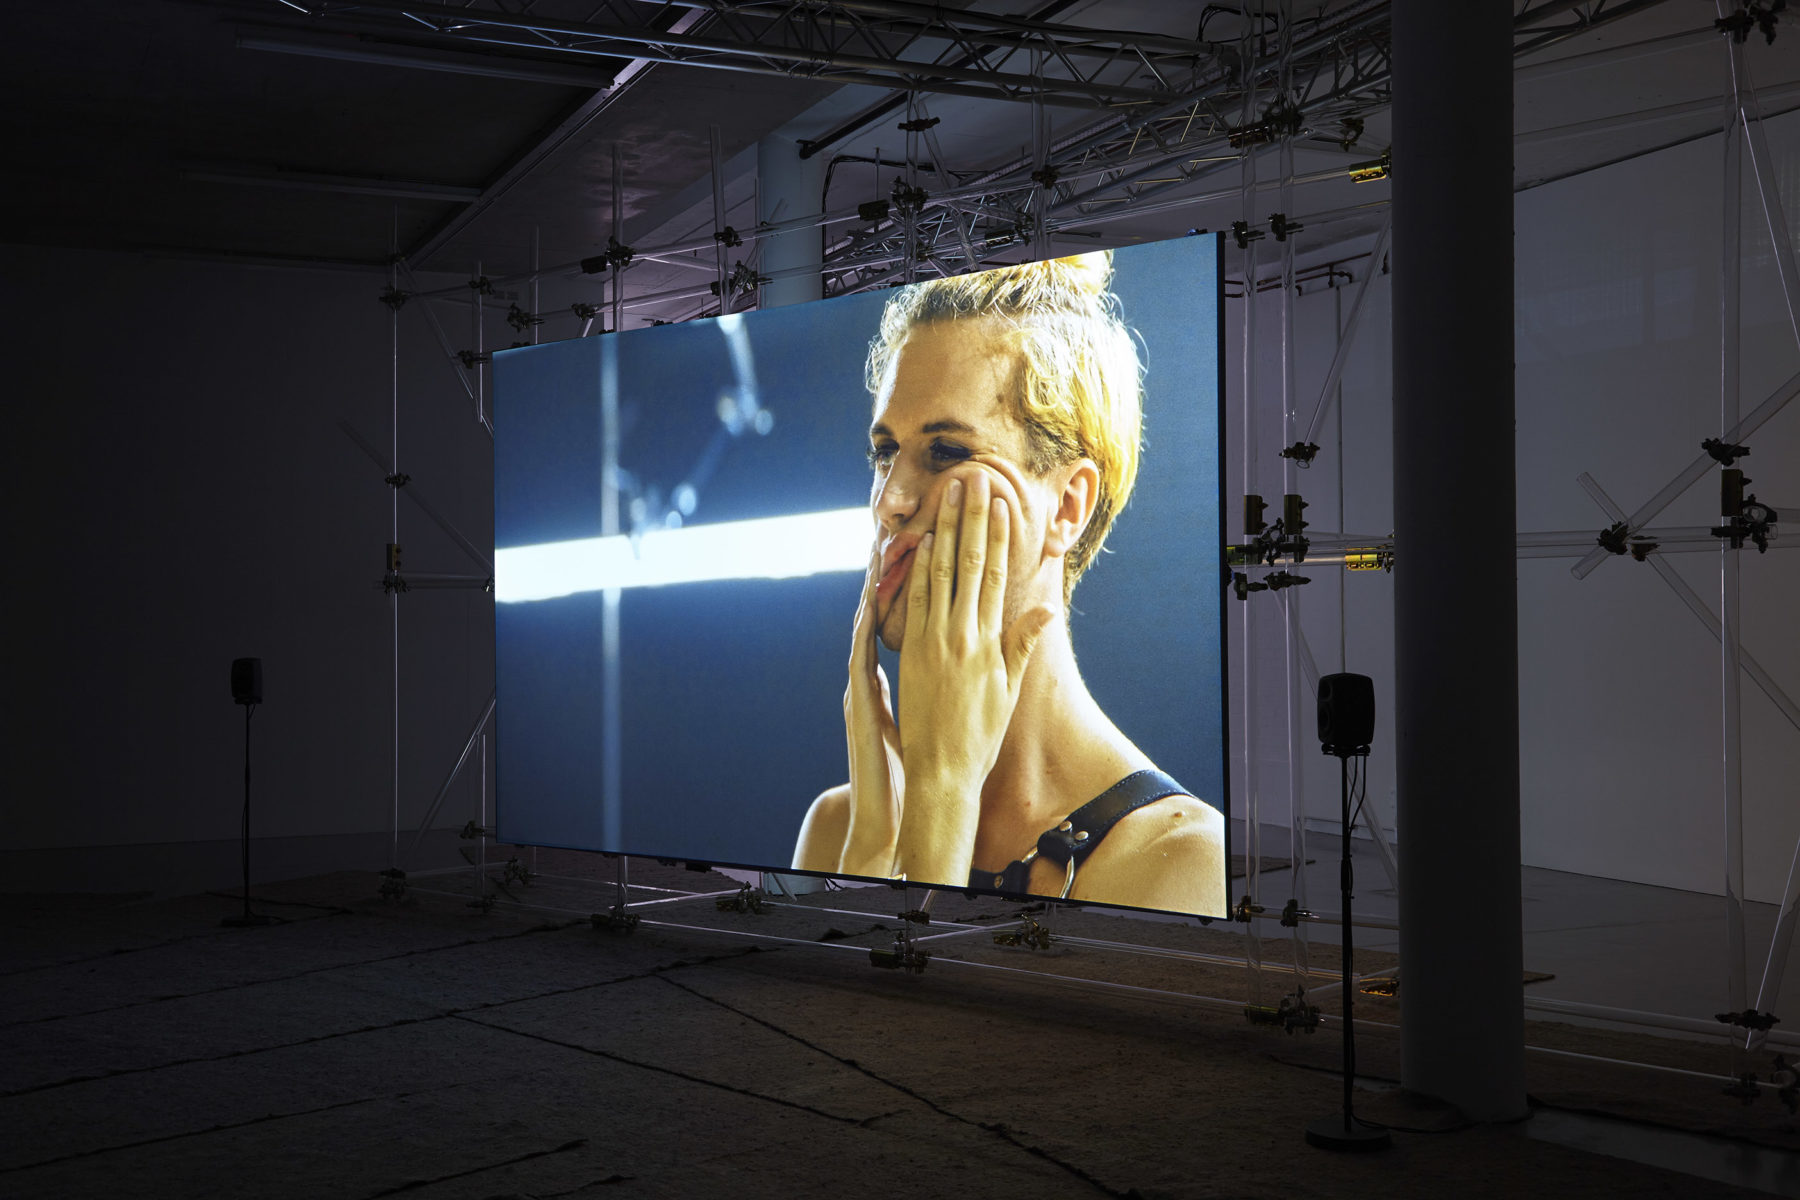 A screen has been erected at Spike Island gallery using a lot of scaffolding. On the screen, a blonde person is wearing leather bondage gear and kneading their face.